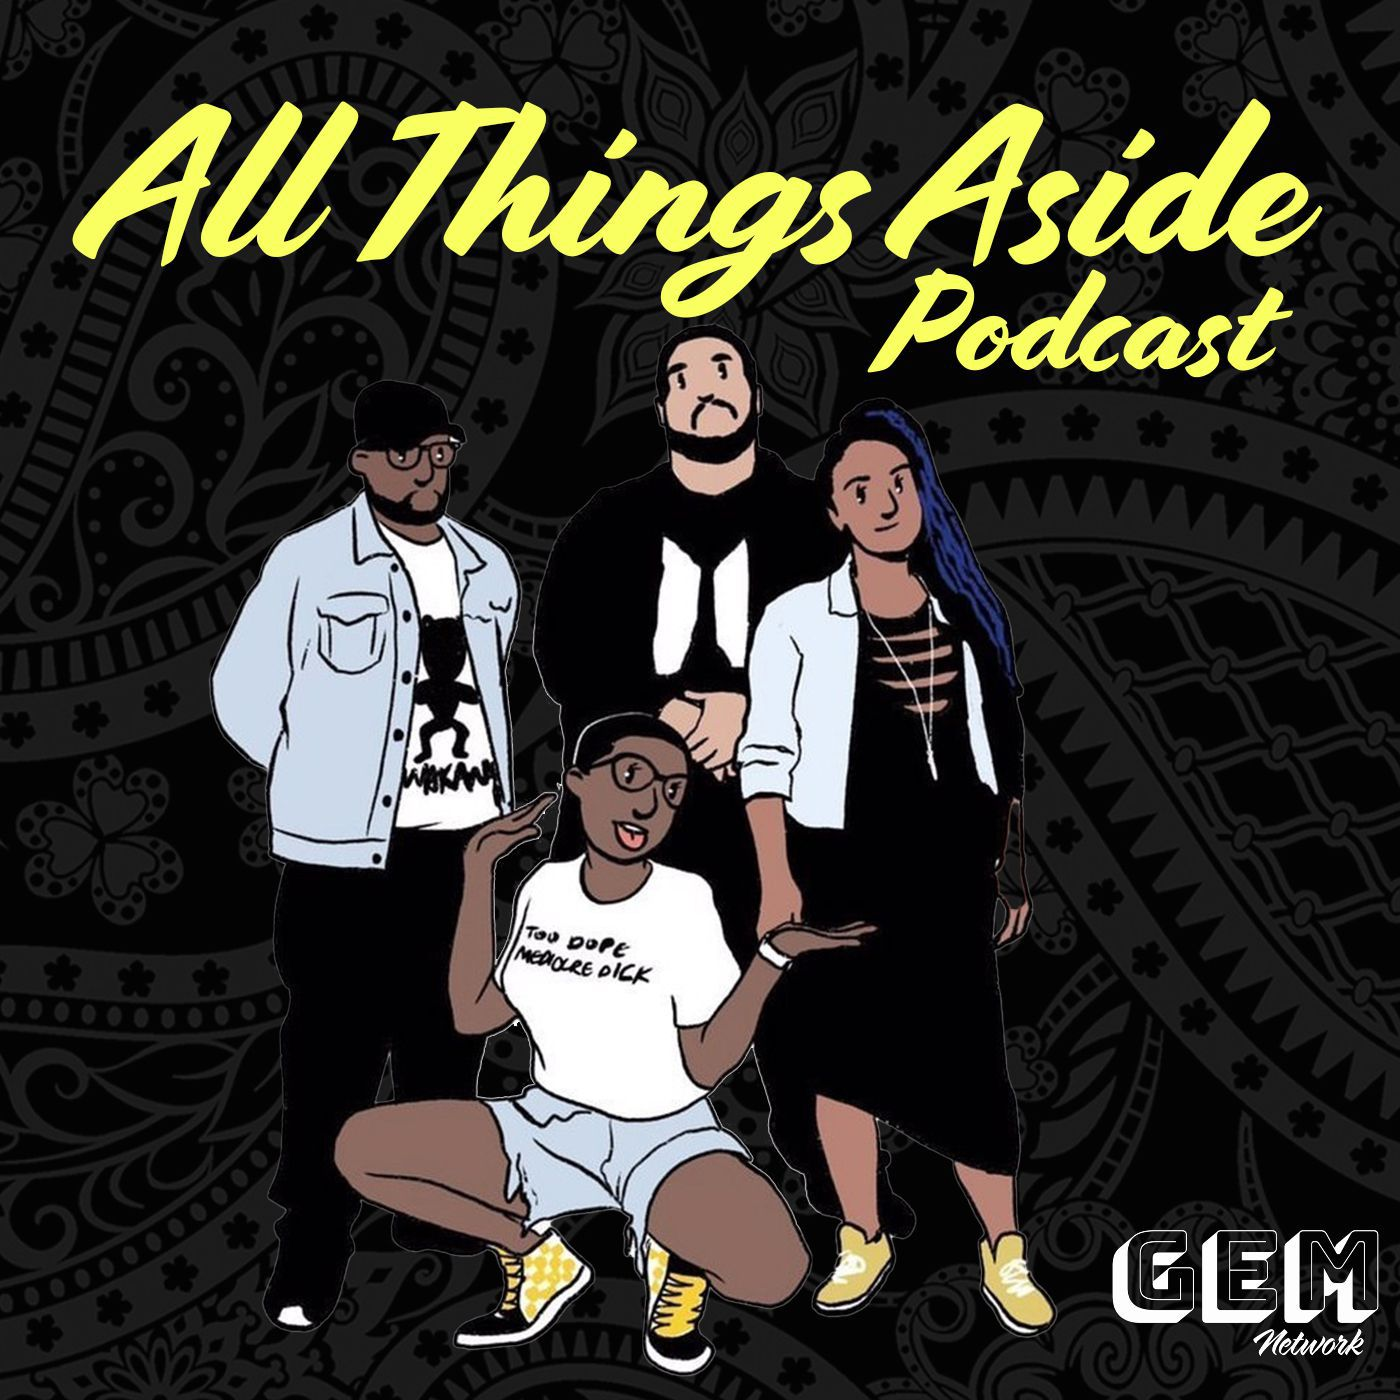 All Things Aside Podcast